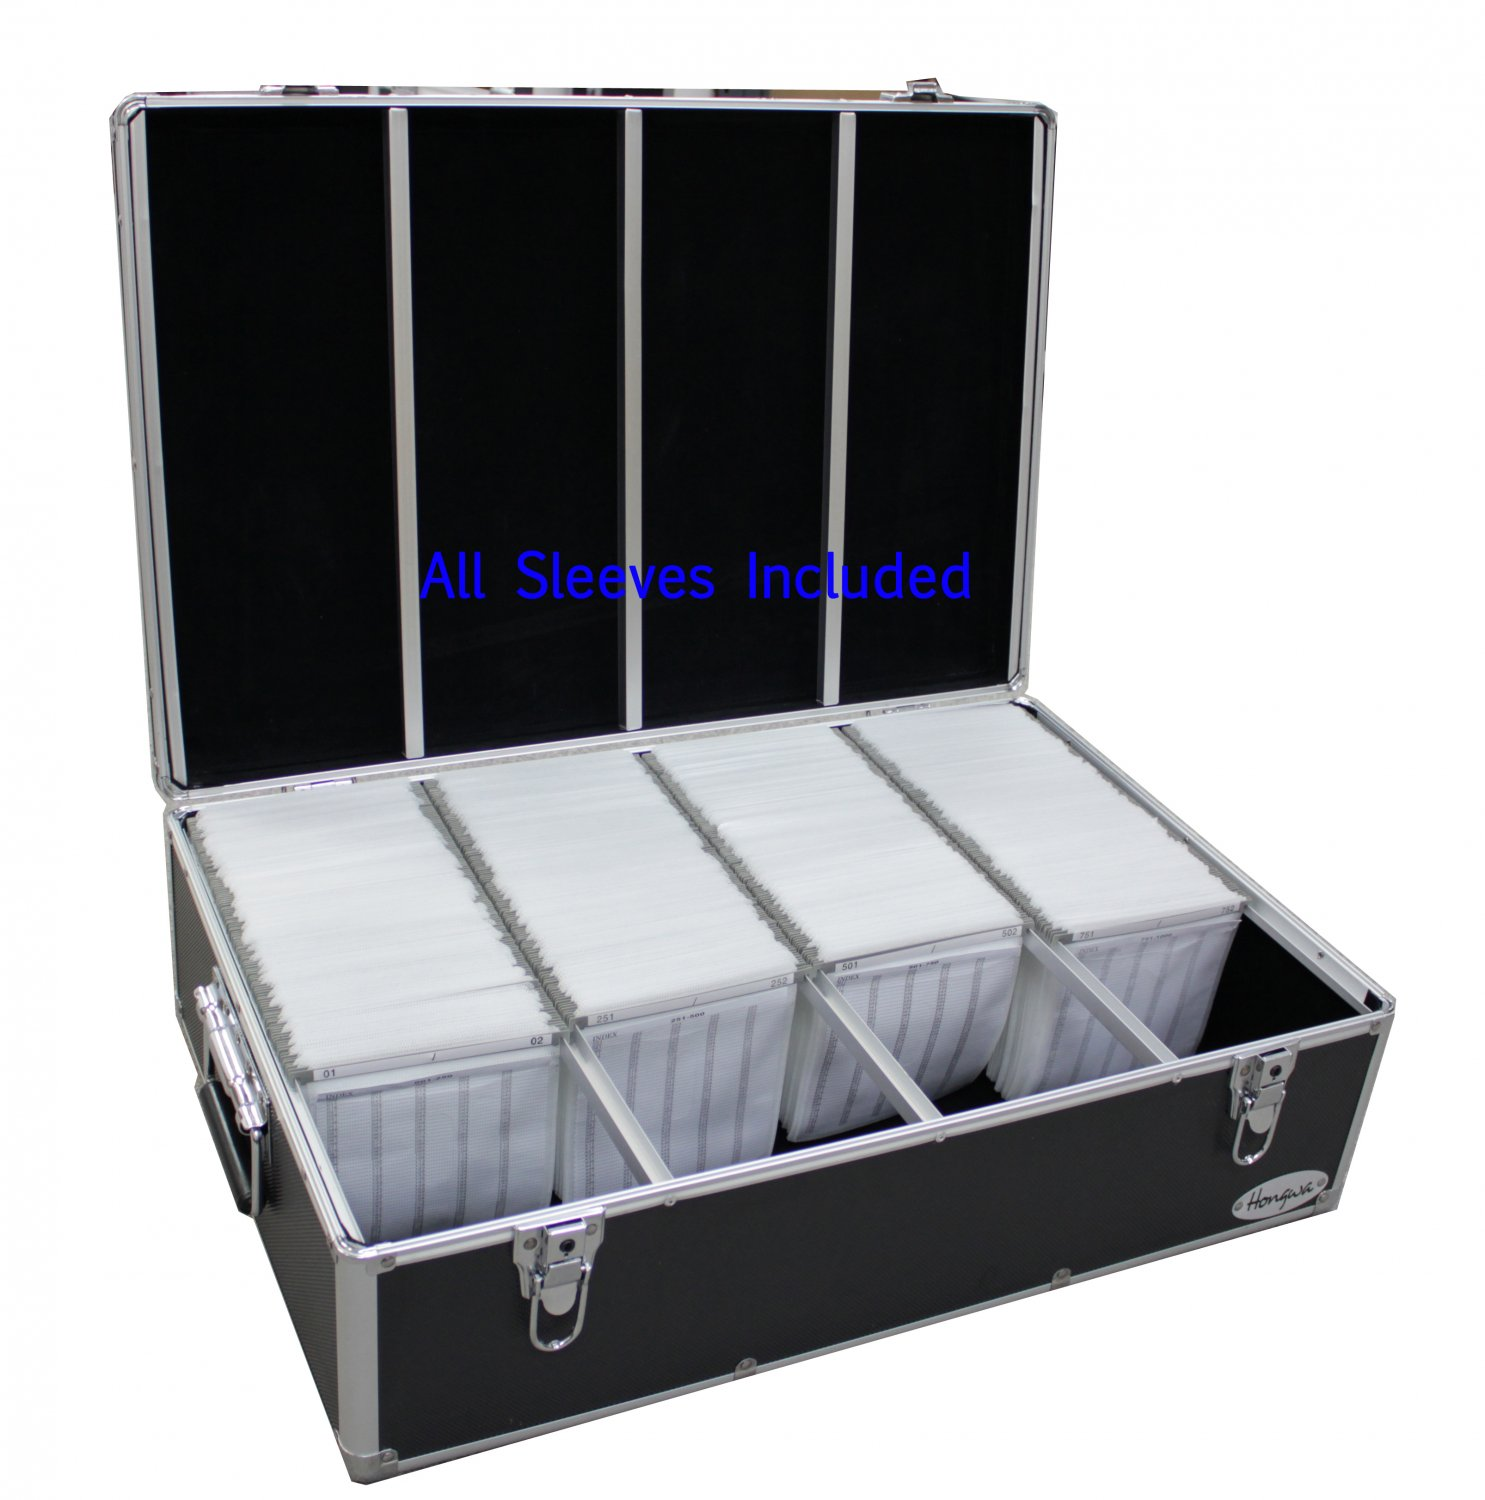 1000 CD DVD PREMIUM ALUMINUM STORAGE CARRYING CASE BOX BLACK FREE SHIPPING